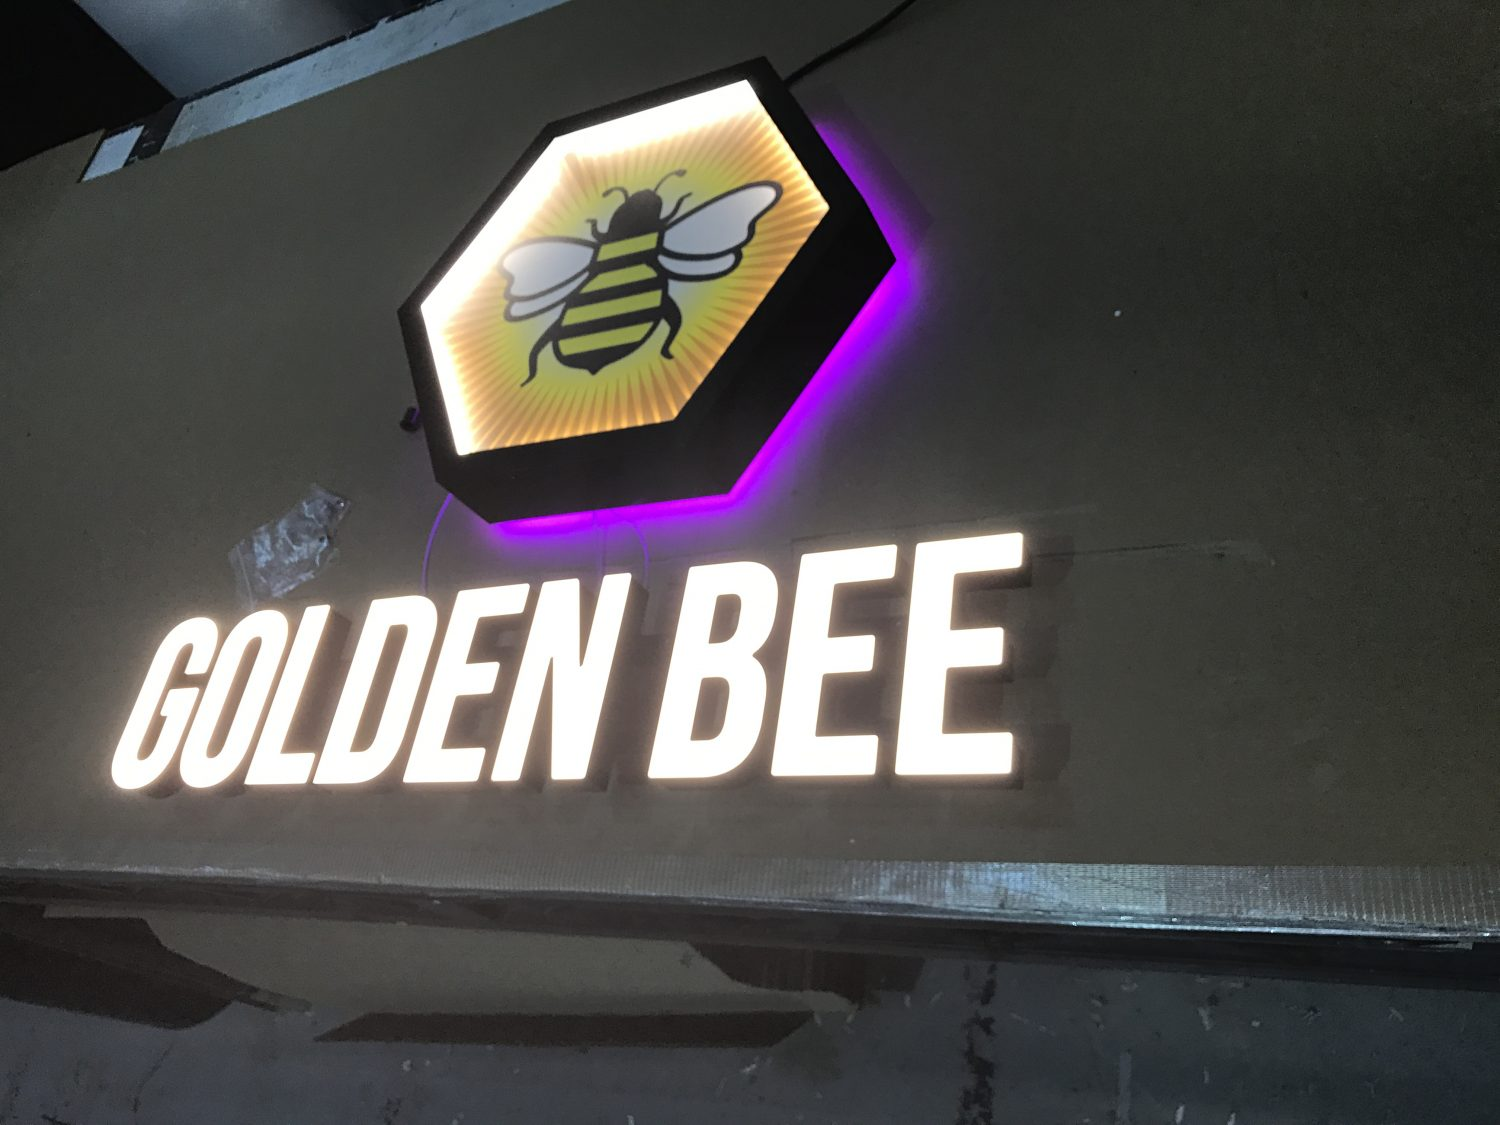 Golden Bee Illuminated Logo